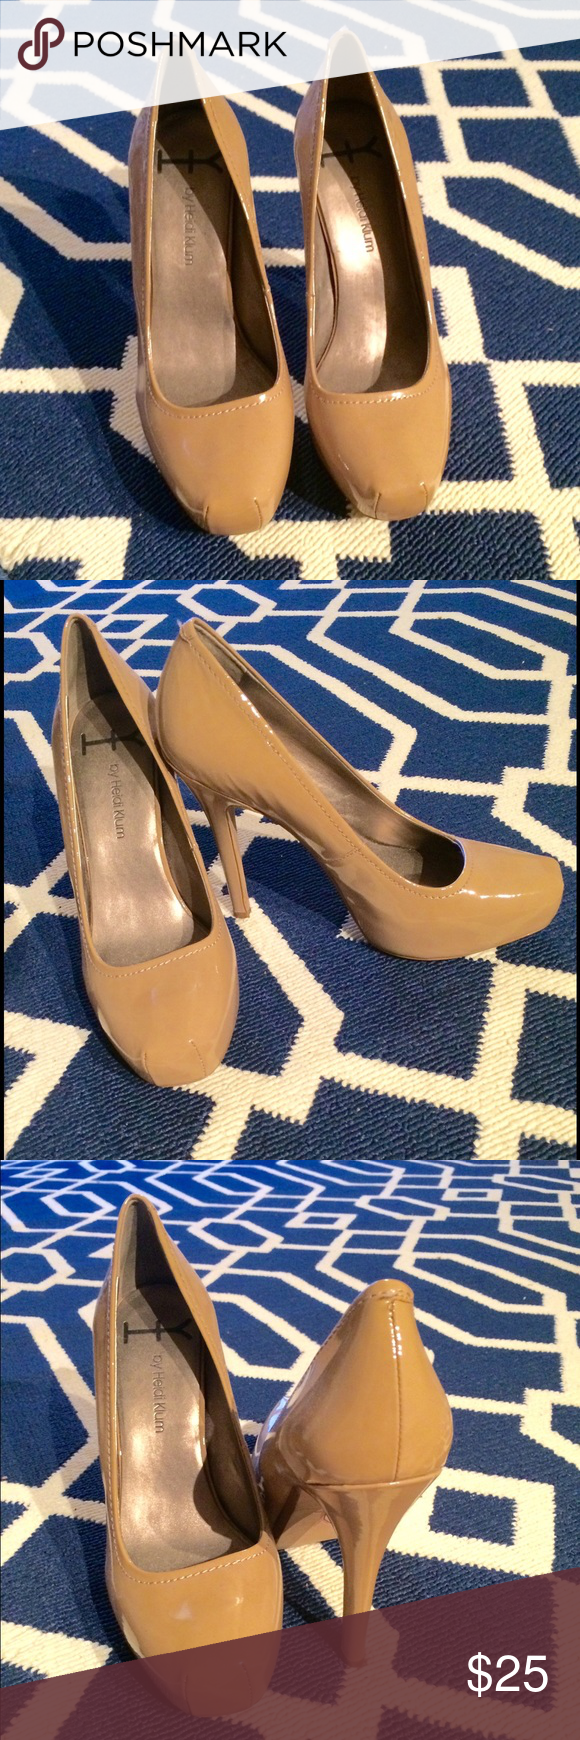 Hedi Klum Nude Pumps Nude pumps are a staple in anyone's closet. Get these like-new nudes with a bit of attitude. No scratches or scuffs - fits like a US 8.5. Shoes Heels